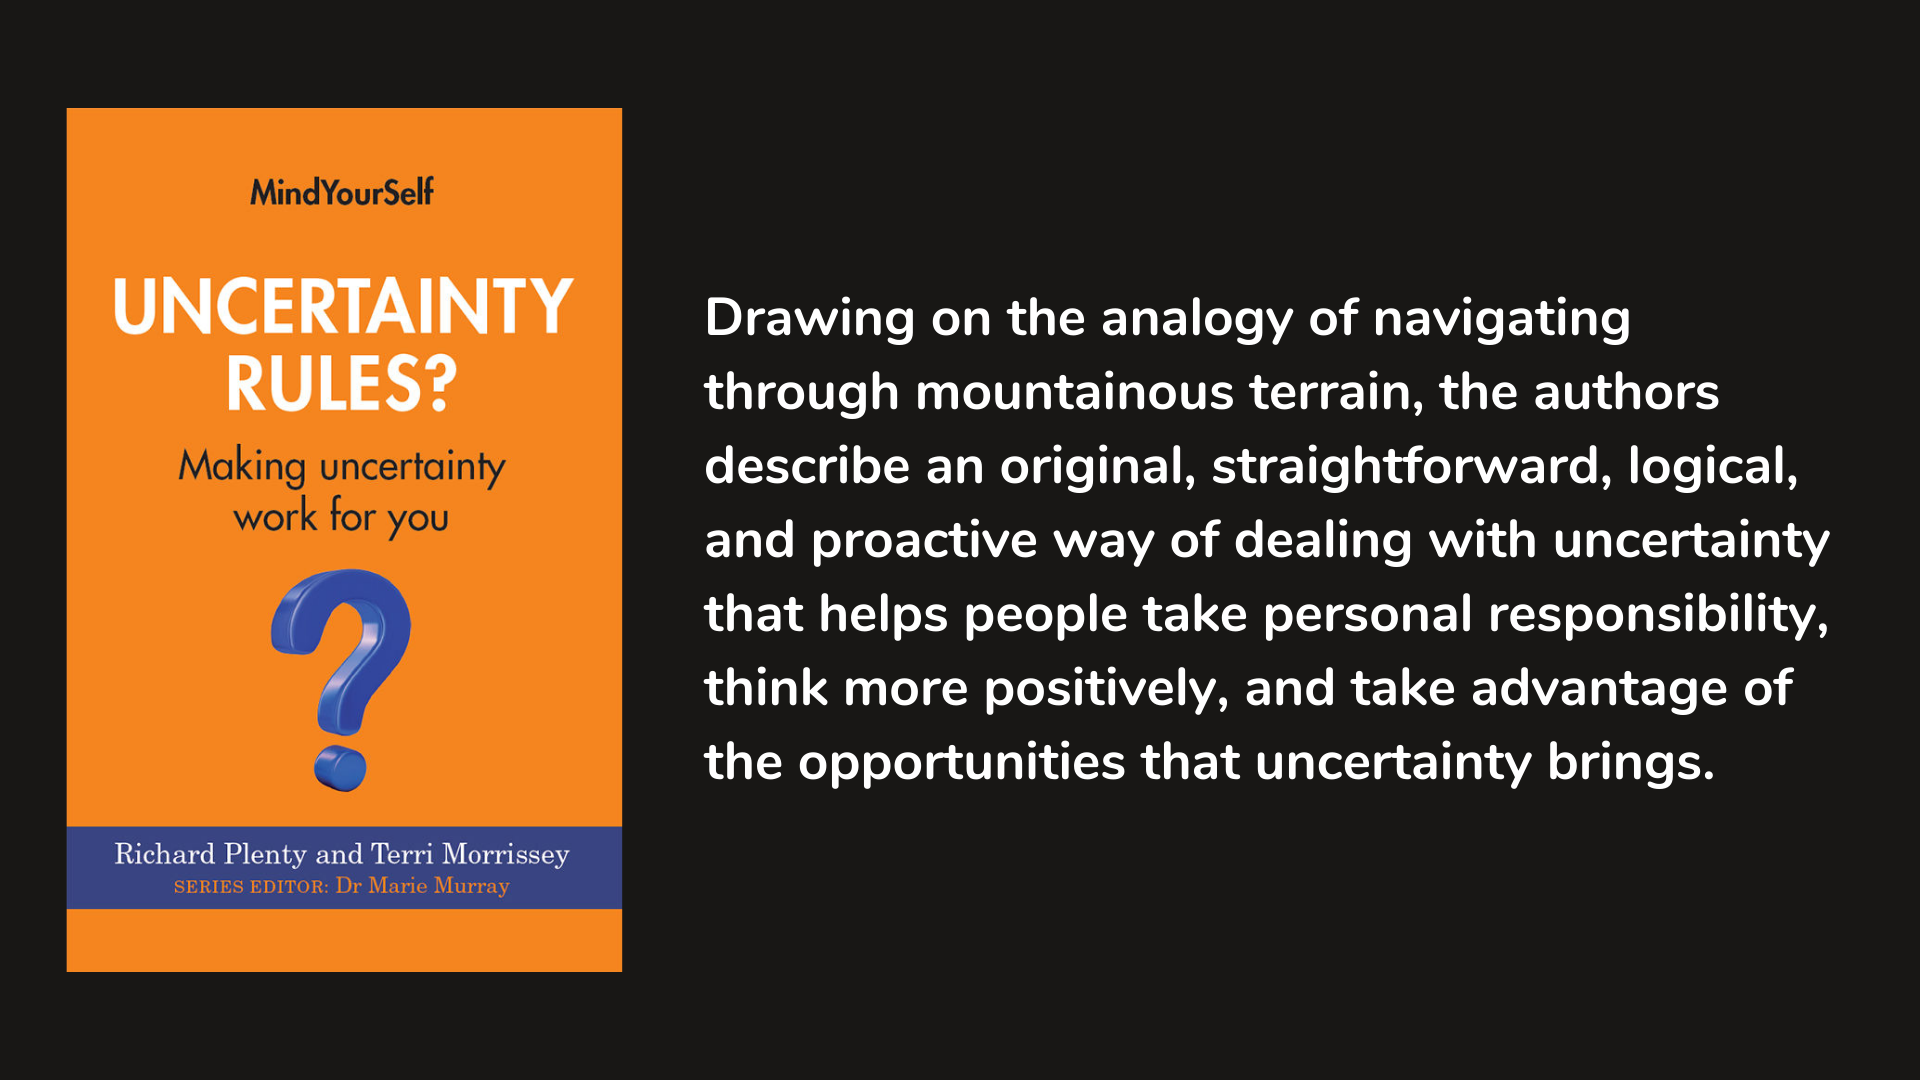 Uncertainty Rules? Making Uncertainty Work For You by Richard Plenty and Terri Morrissey.